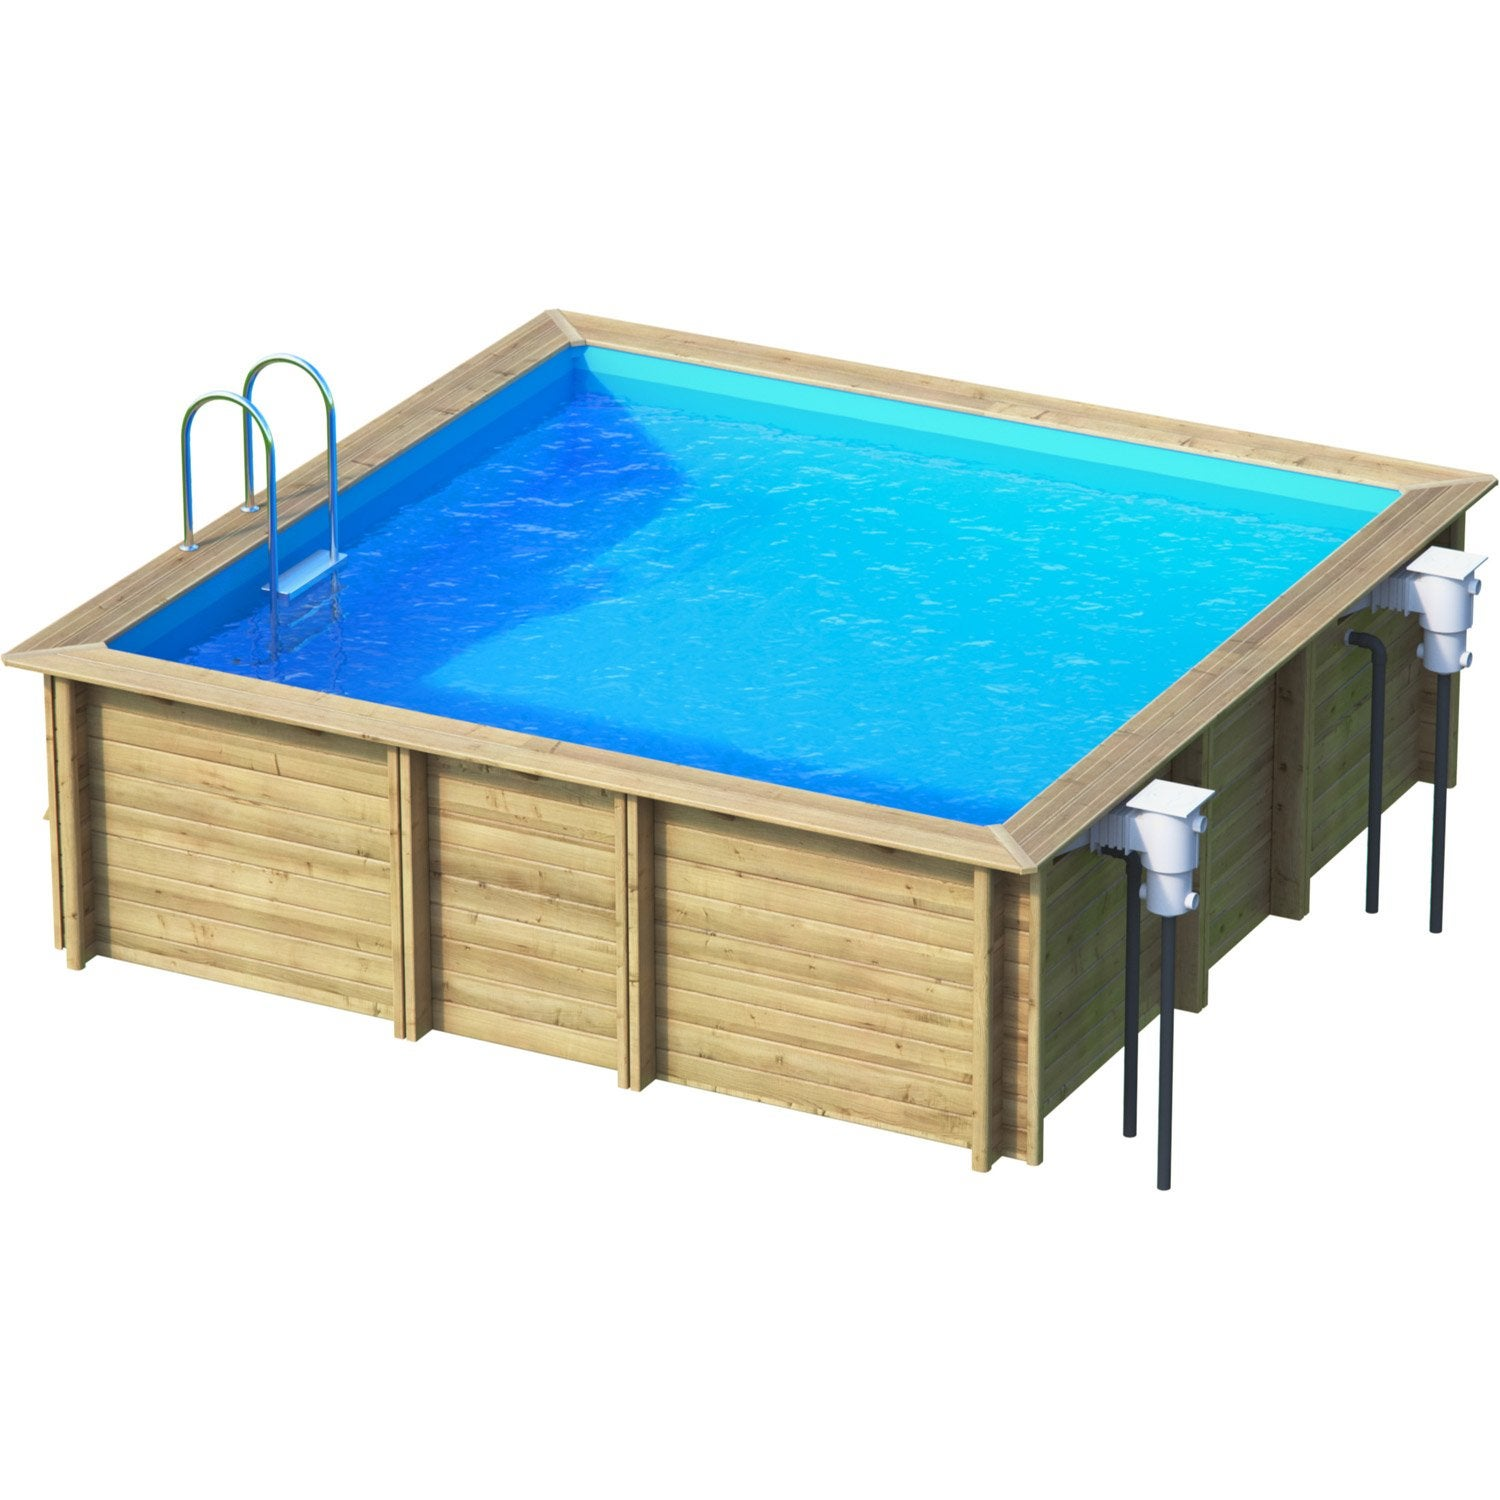 Piscine bois weva leroy merlin for Piscine bois leroy merlin